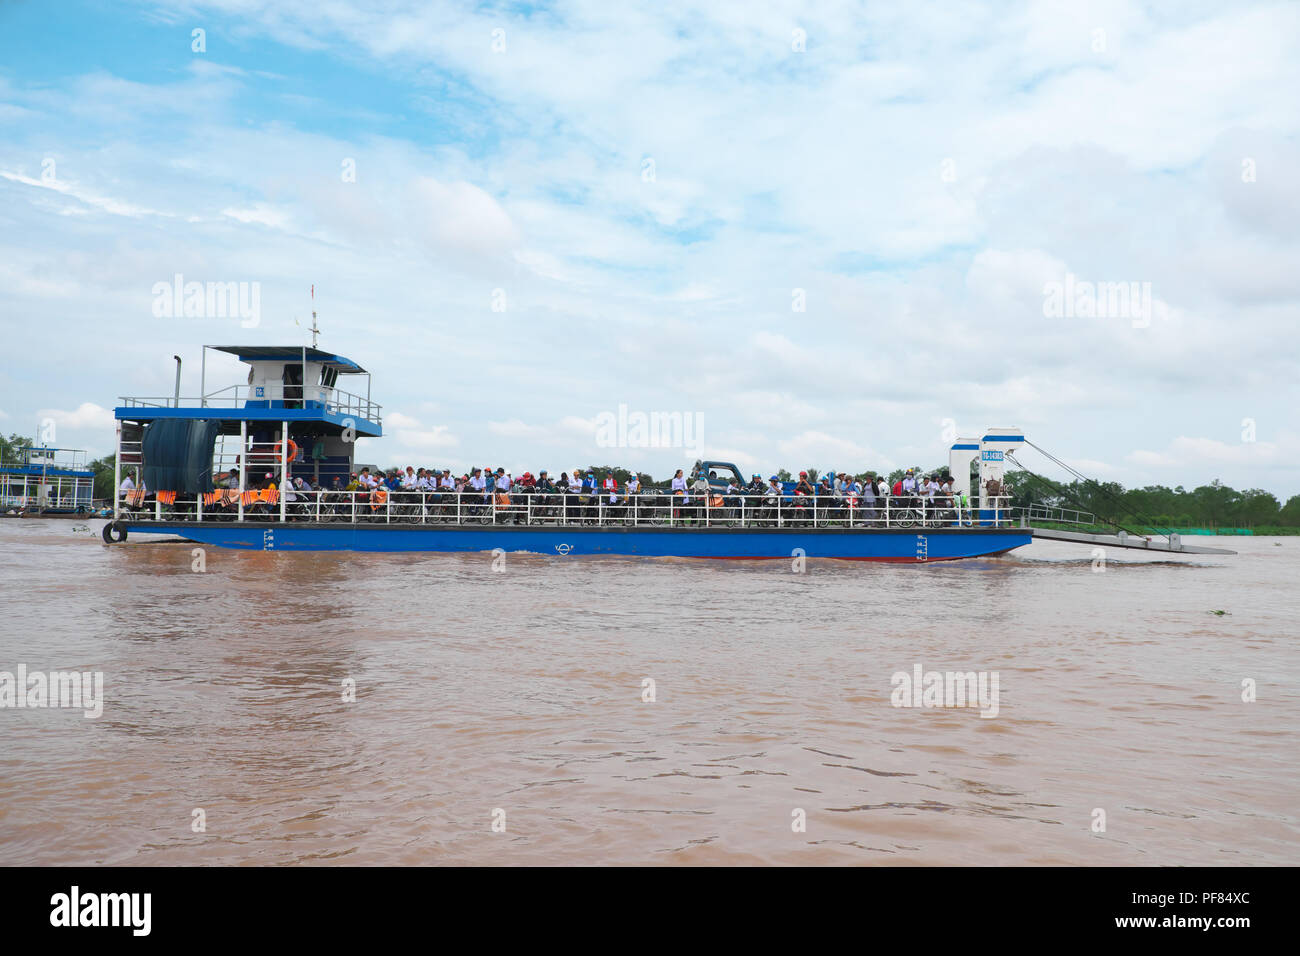 Vietnam Mekong River ferry boat crossing the Mekong Delta waterways heading to Cai Be town Viet Nam - Stock Image